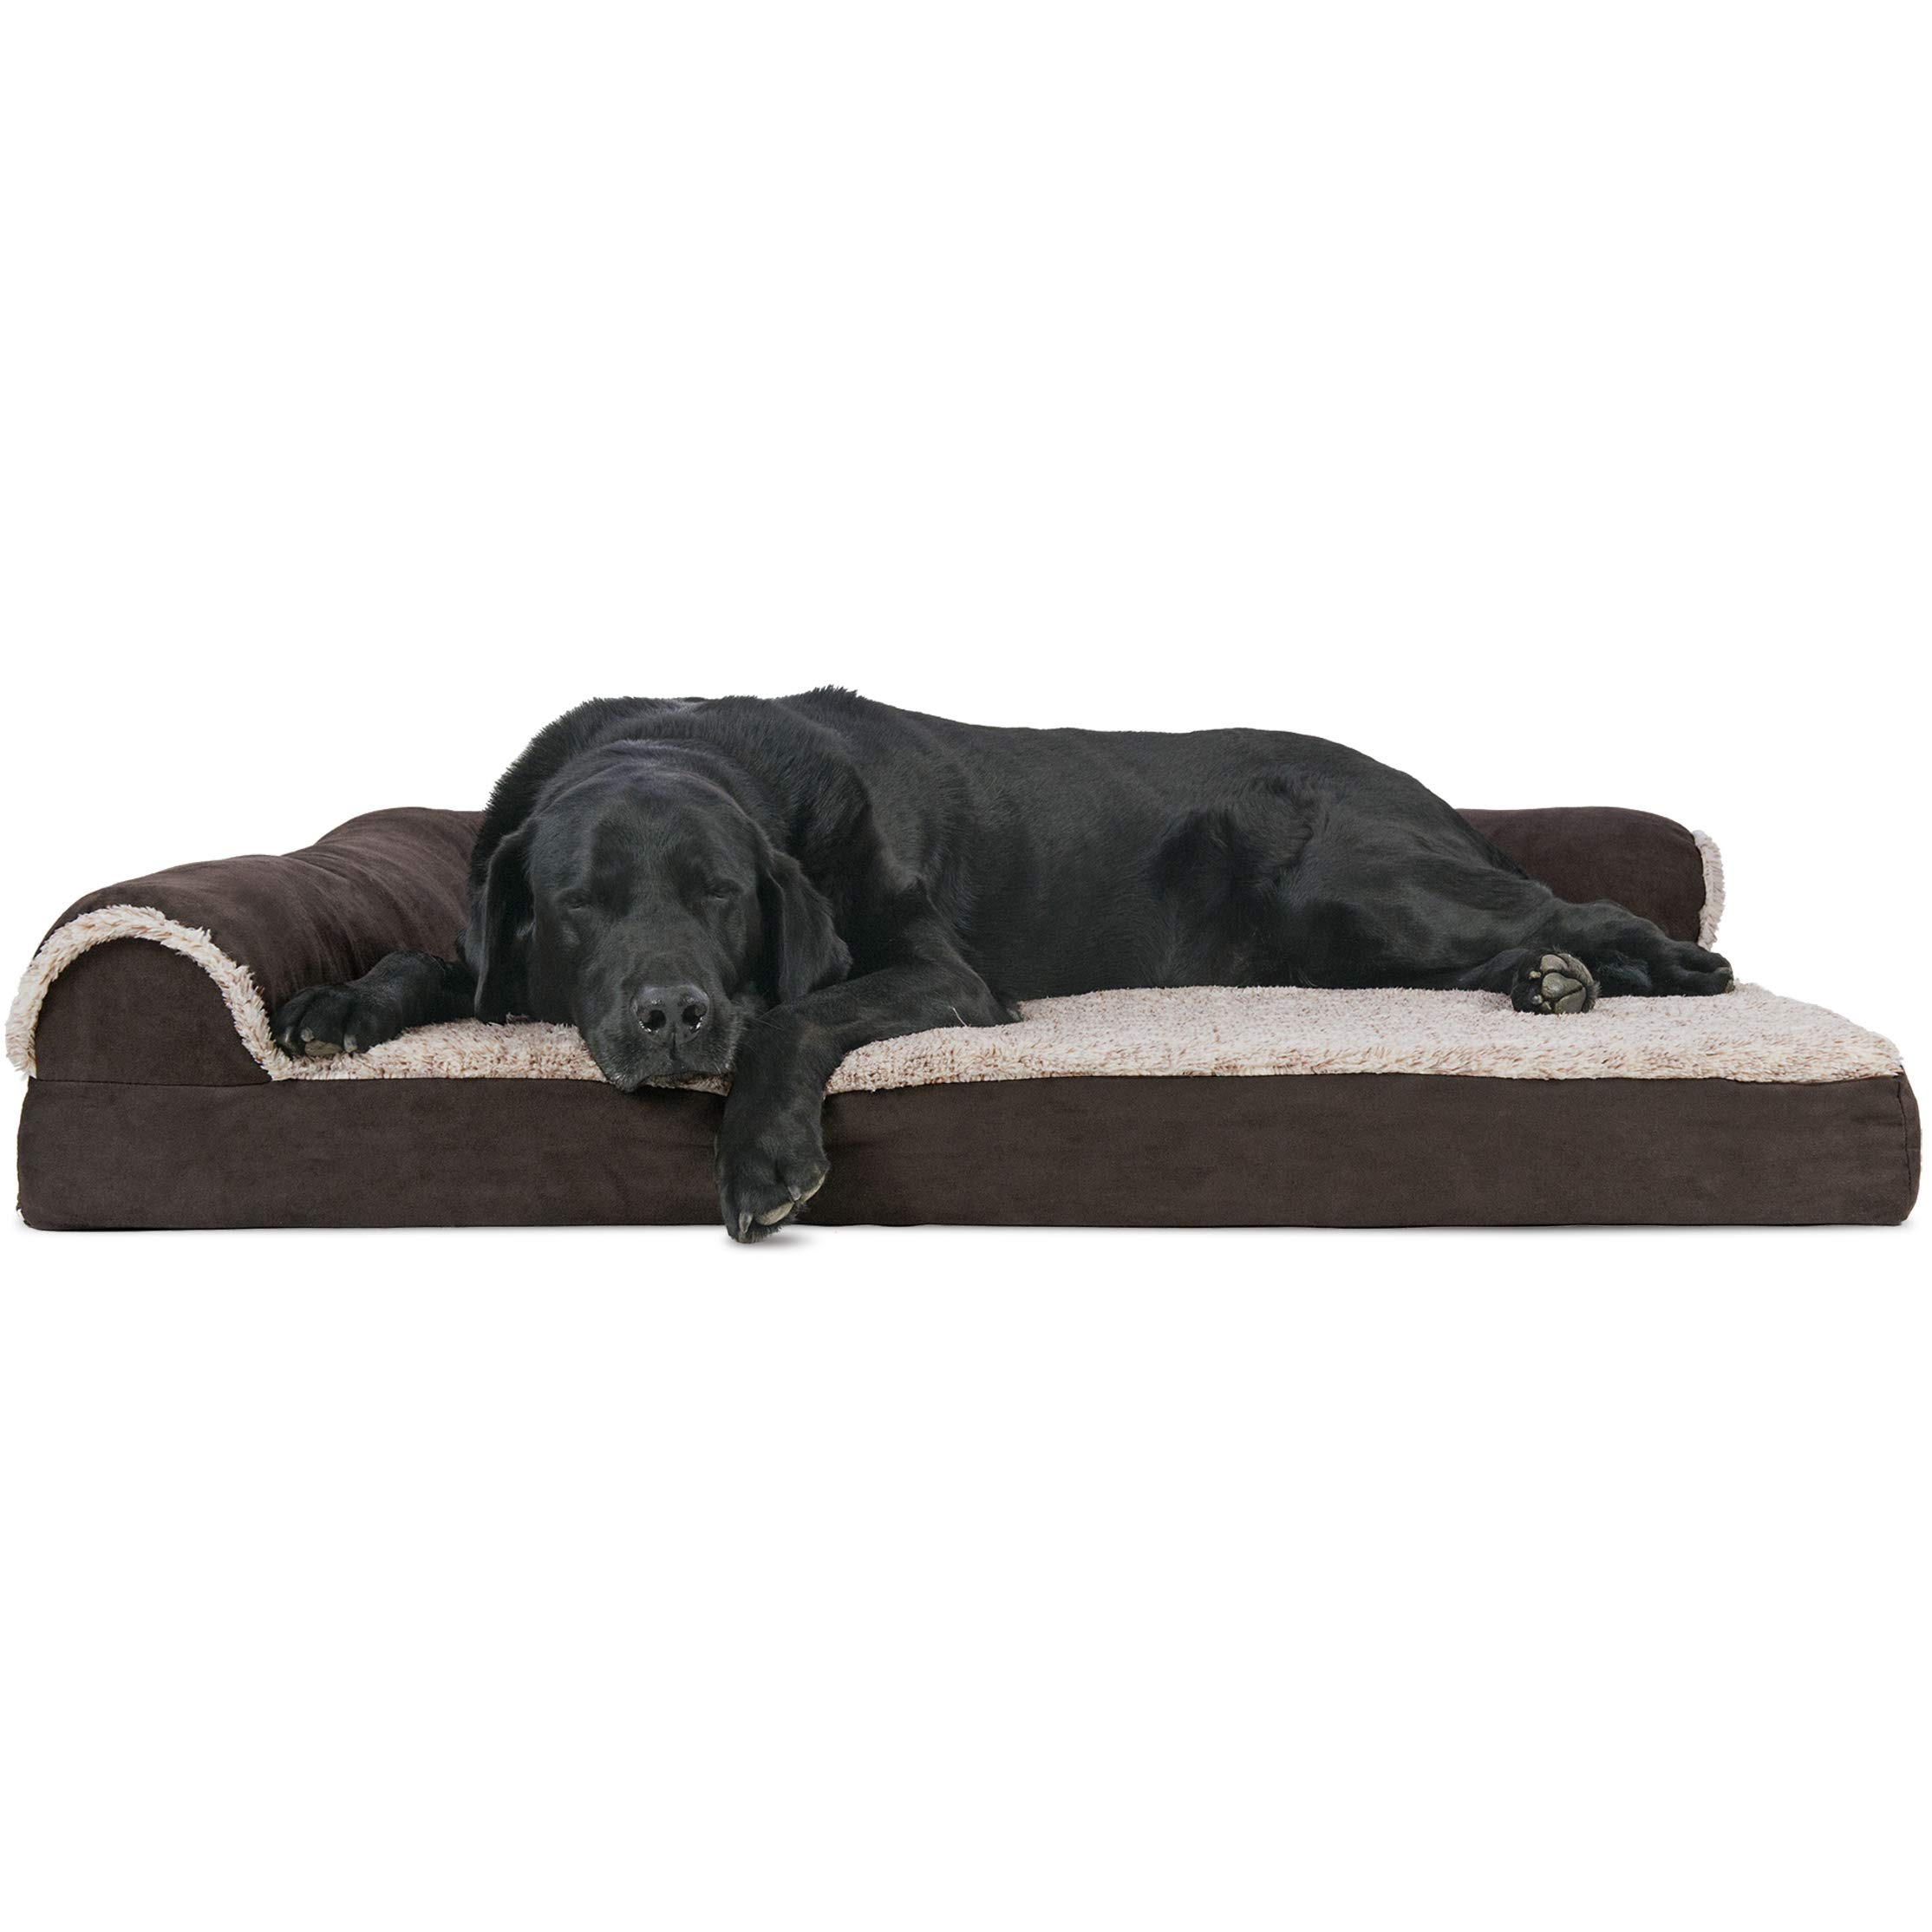 FurHaven Deluxe Orthopedic Chaise Couch Pet Bed for Cats and Dogs, Jumbo, Two-Sided Espresso